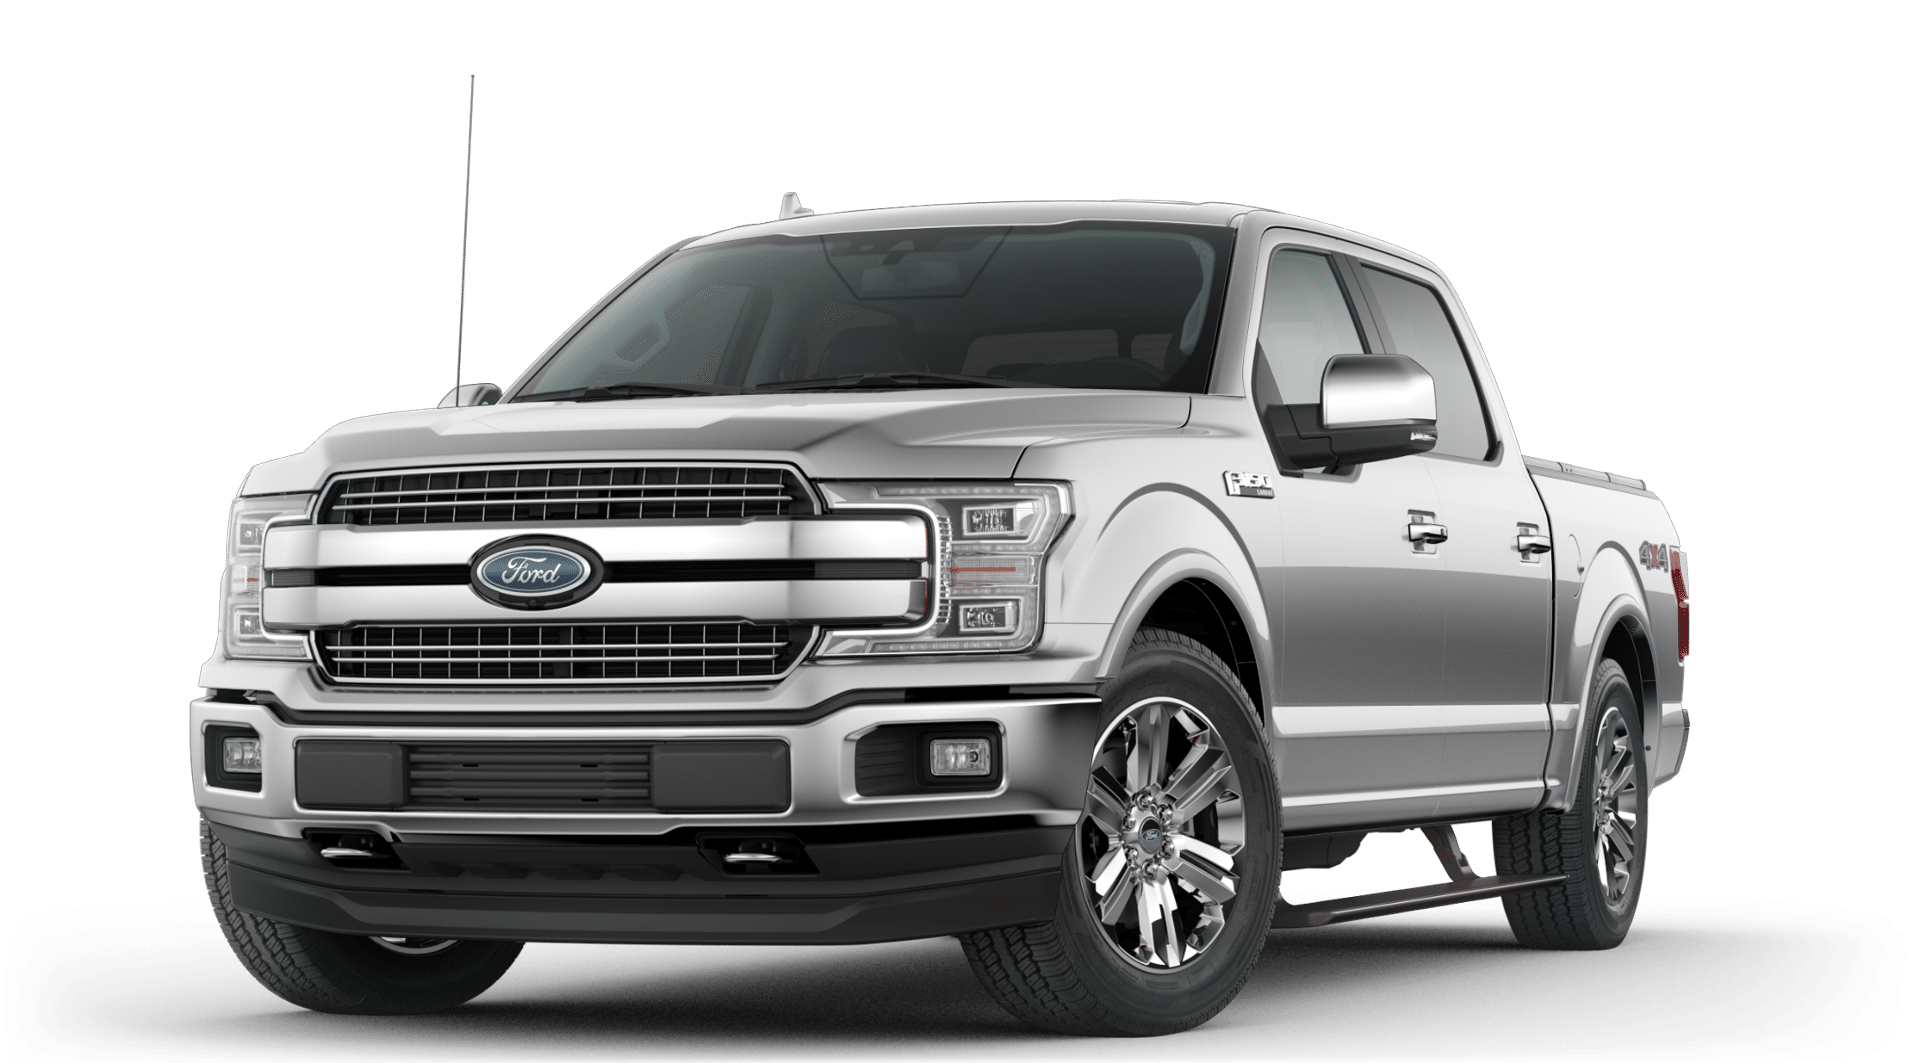 Exterior View Of 2019 F 150 Ford F150 Ford Trucks Ford